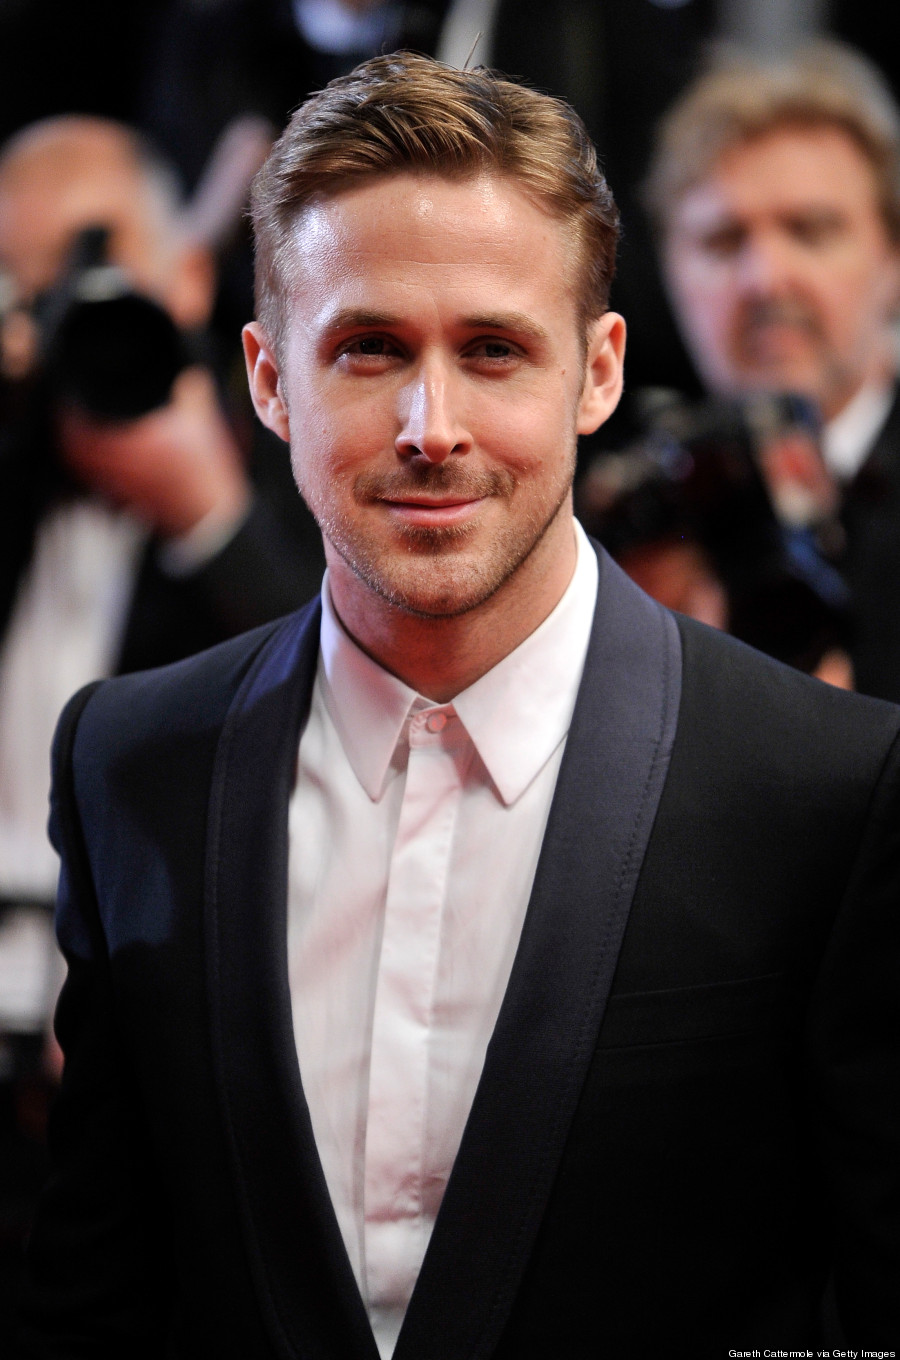 Ryan Gosling Christian Bale Steve Carell Cover New York: Ryan Gosling Uses Dapper Suit To Distract From Bad Cannes